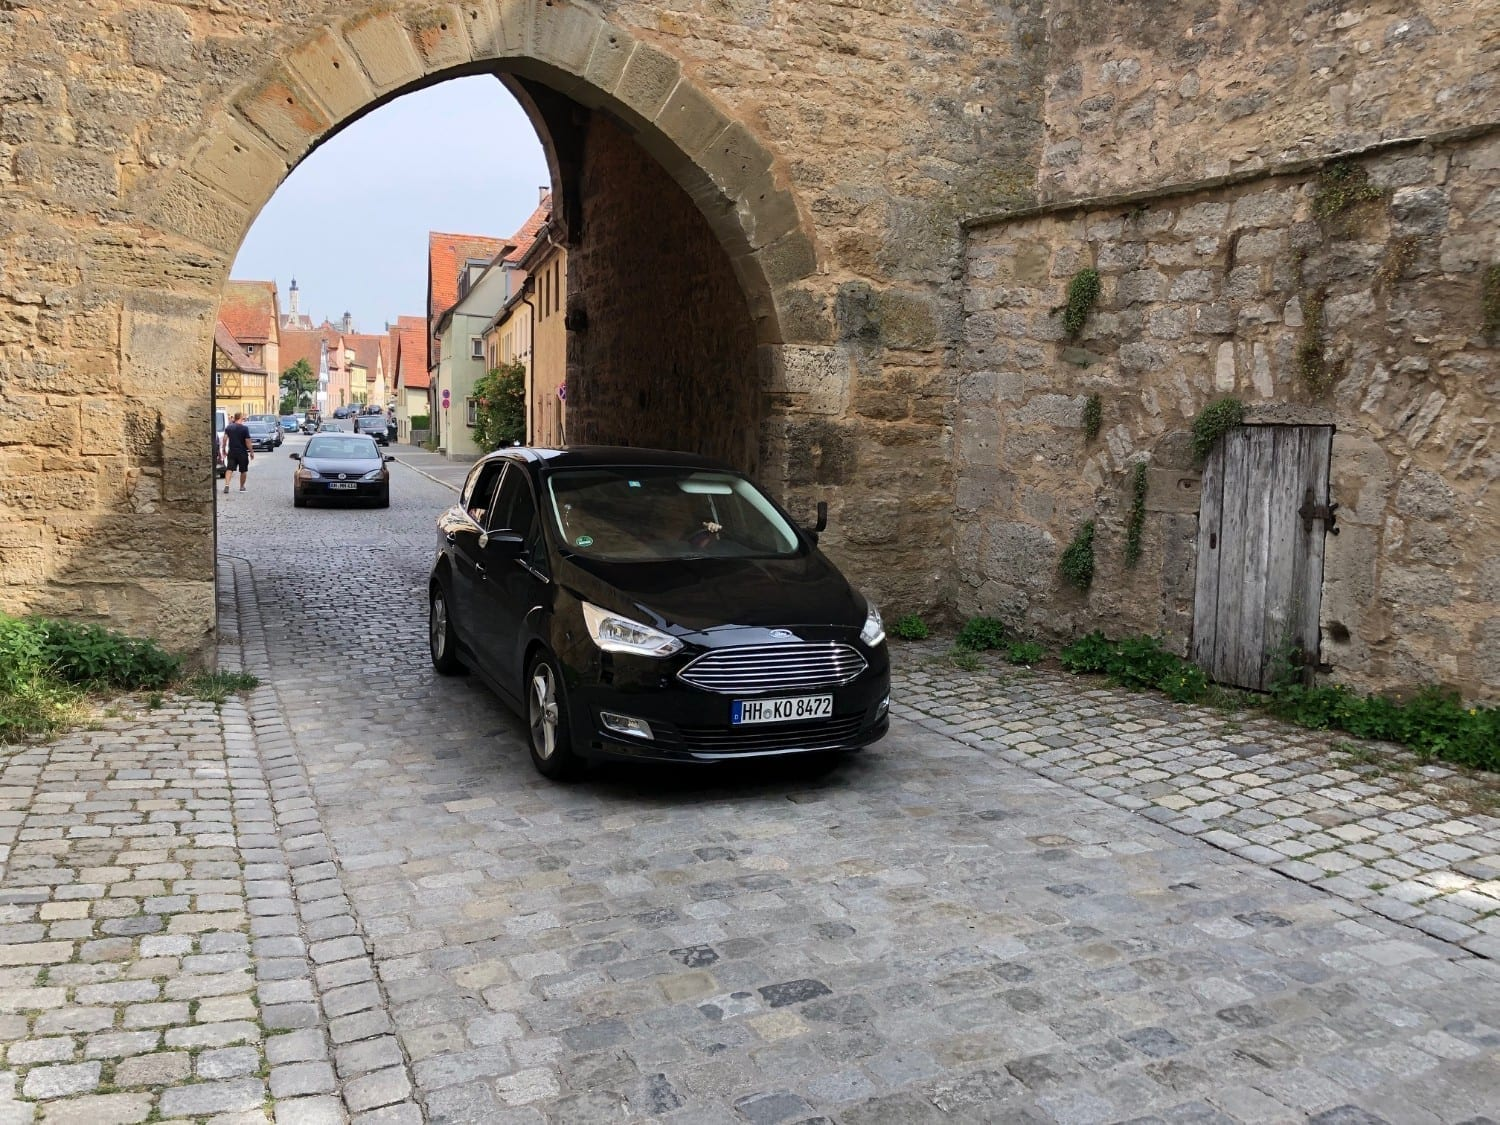 Some Basic Tips for Driving in Germany